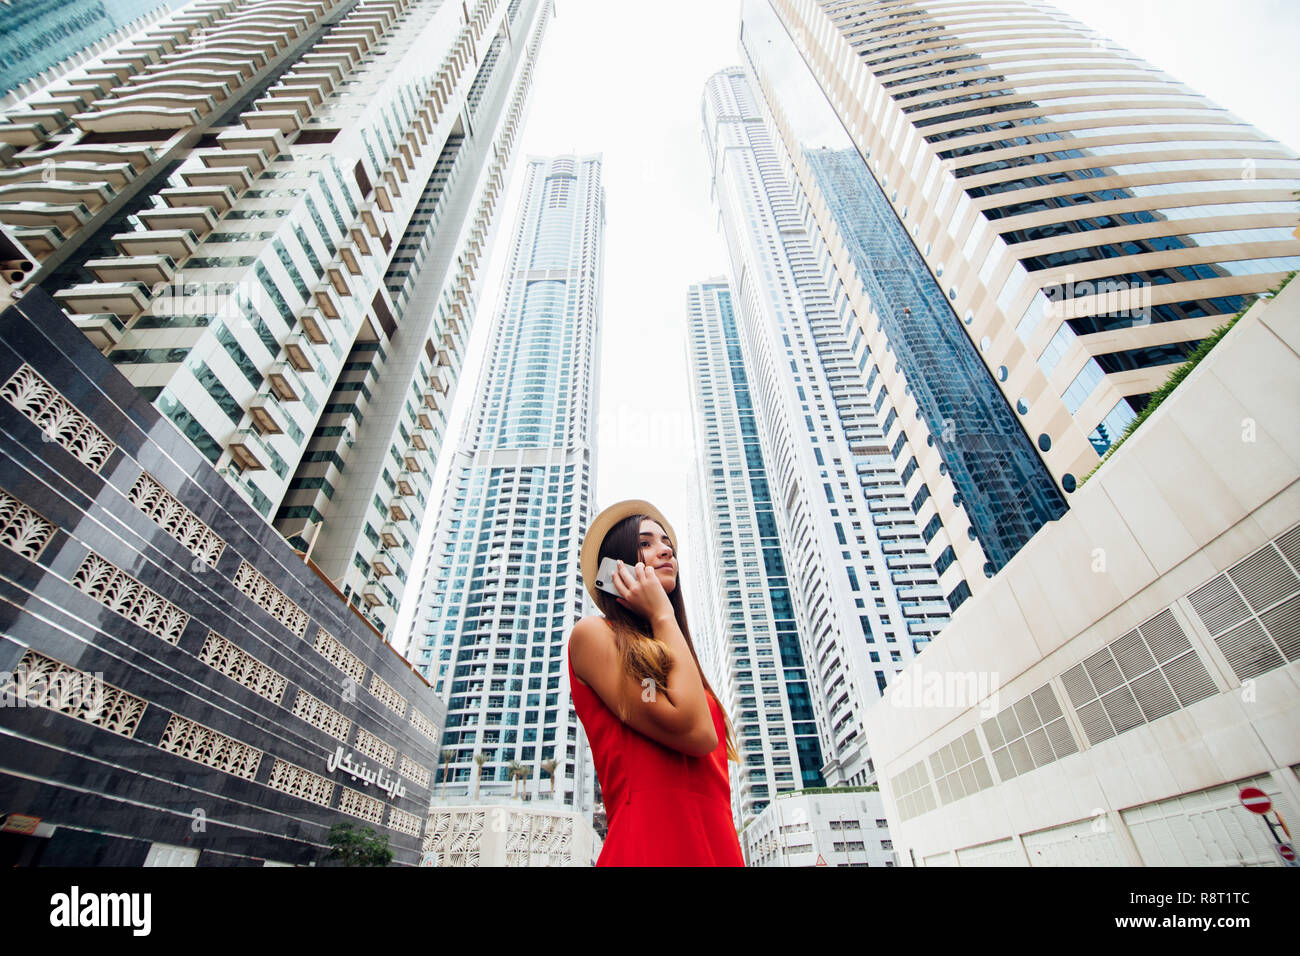 Young woman in red dress and straw hat talking on the phone in front of skycrapers in downtown of modern city. - Stock Image